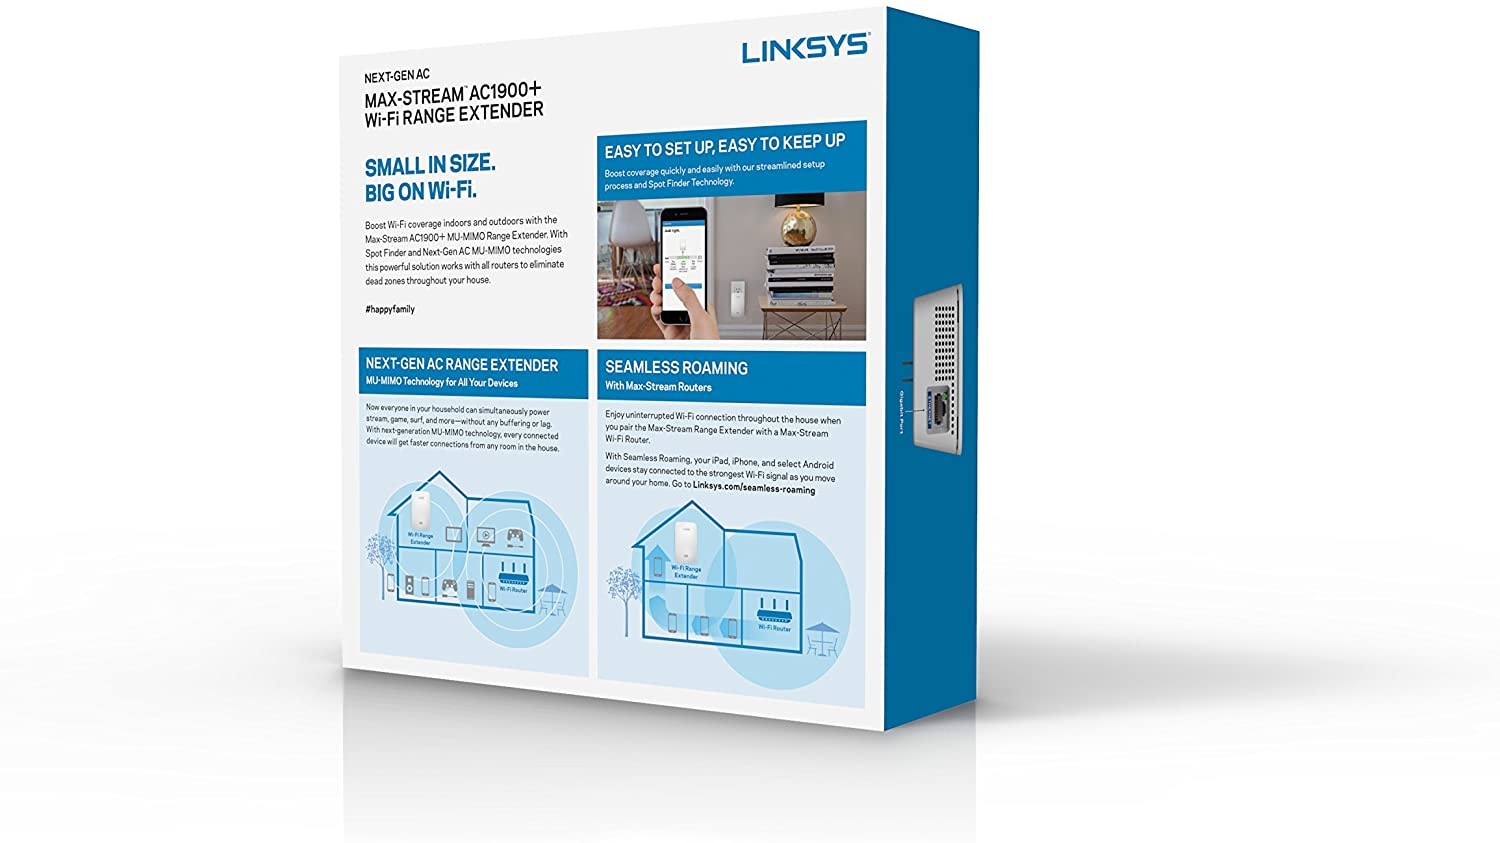 Linksys RE7000 Max-Stream AC1900+ WI-FI Range Extender